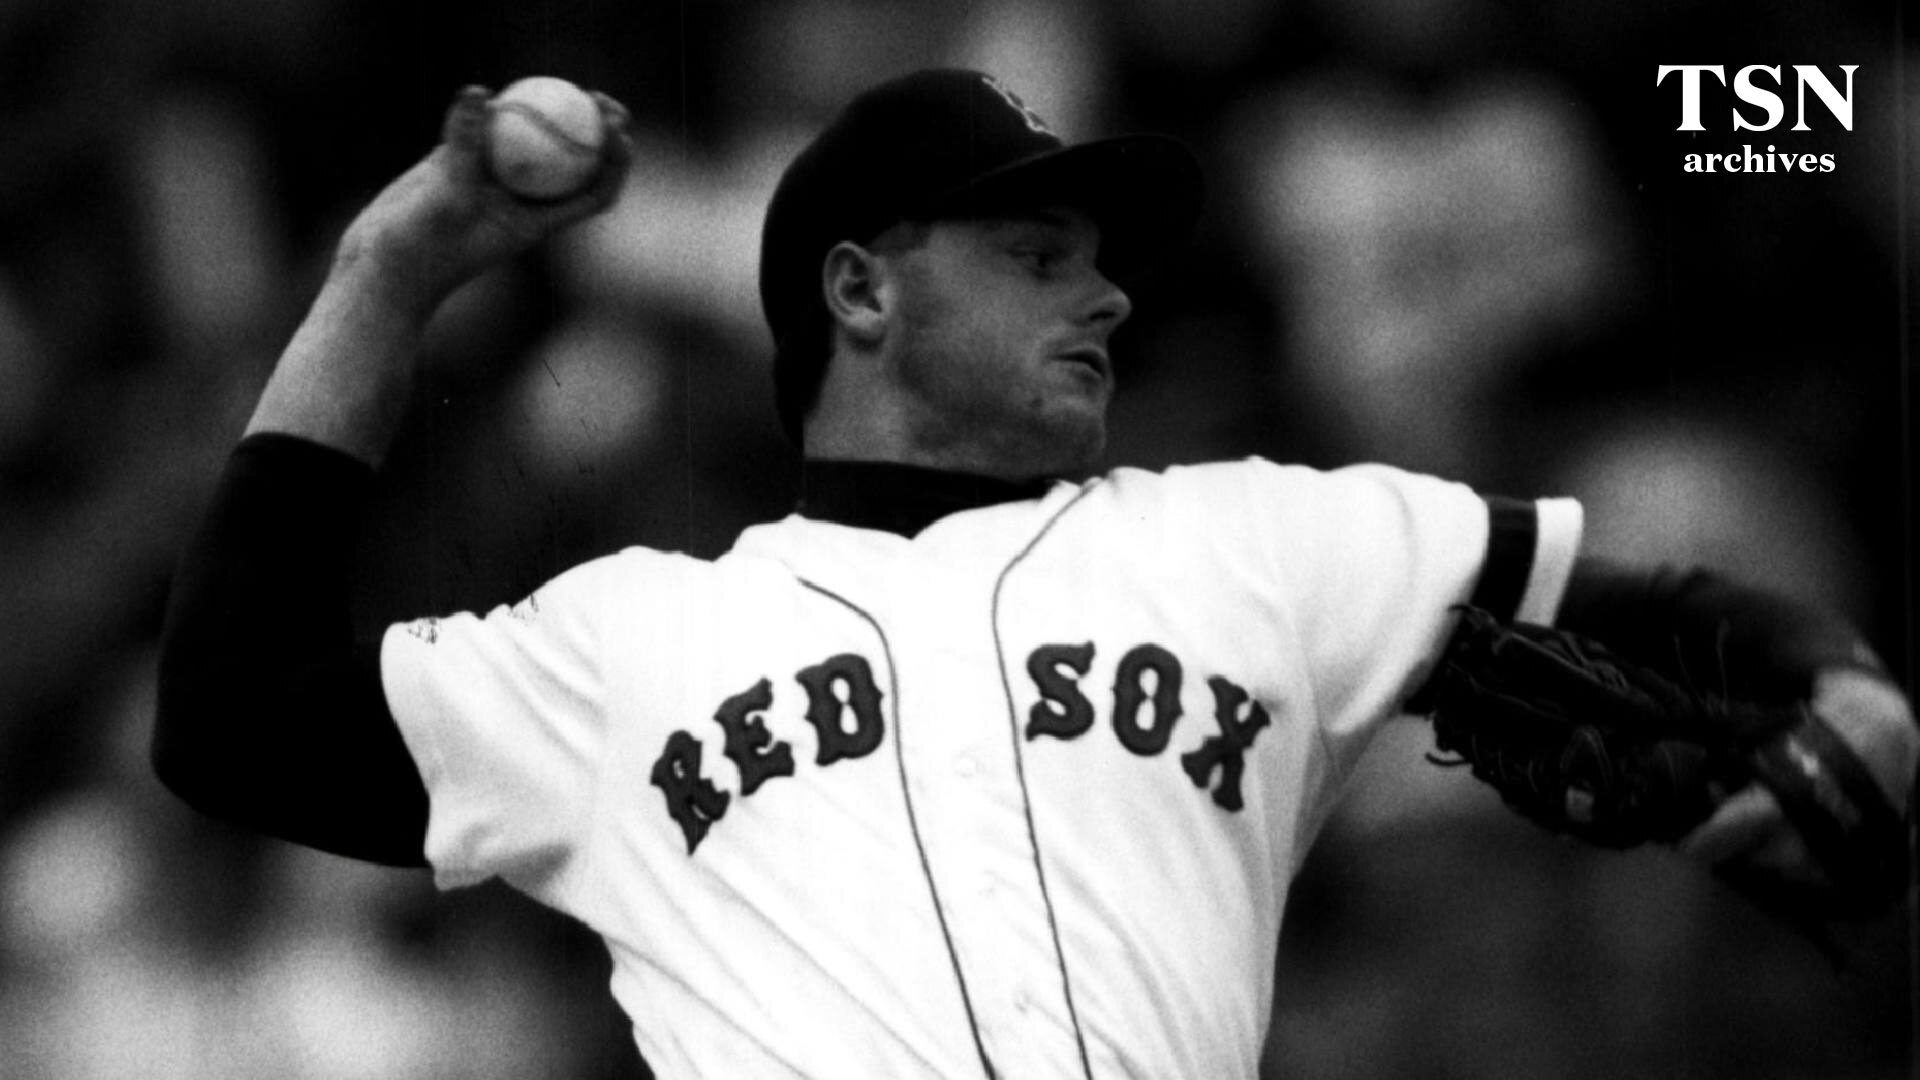 TSN Archives: Roger Clemens strikes out 20 Mariners: 'I'm in the Hall of Fame'